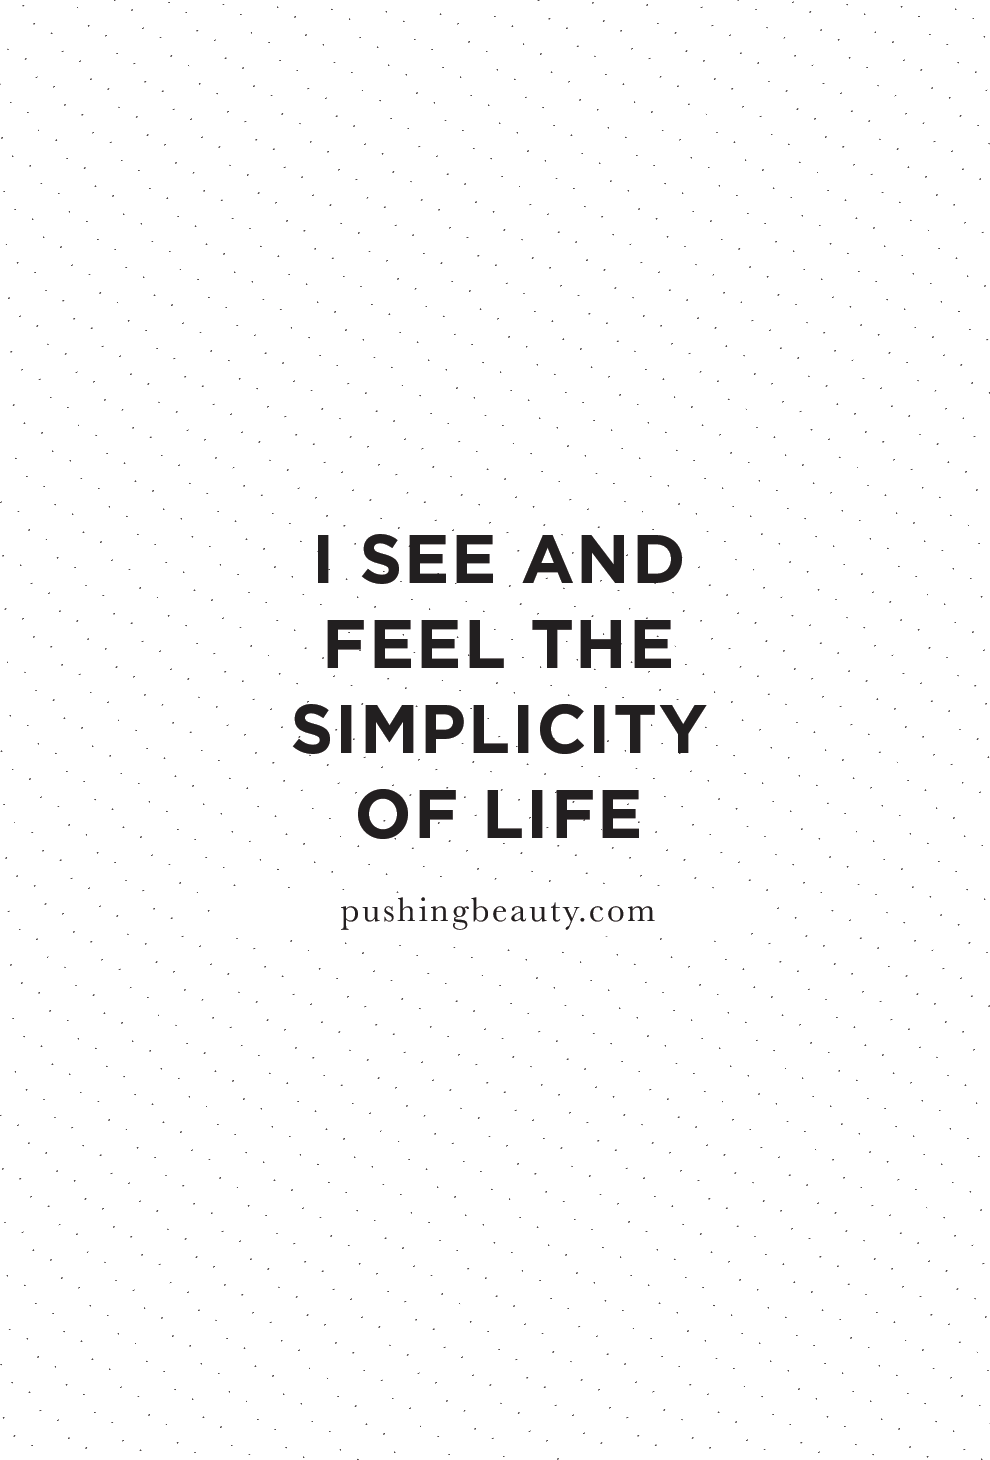 Life is simple quote  | Pushing Beauty